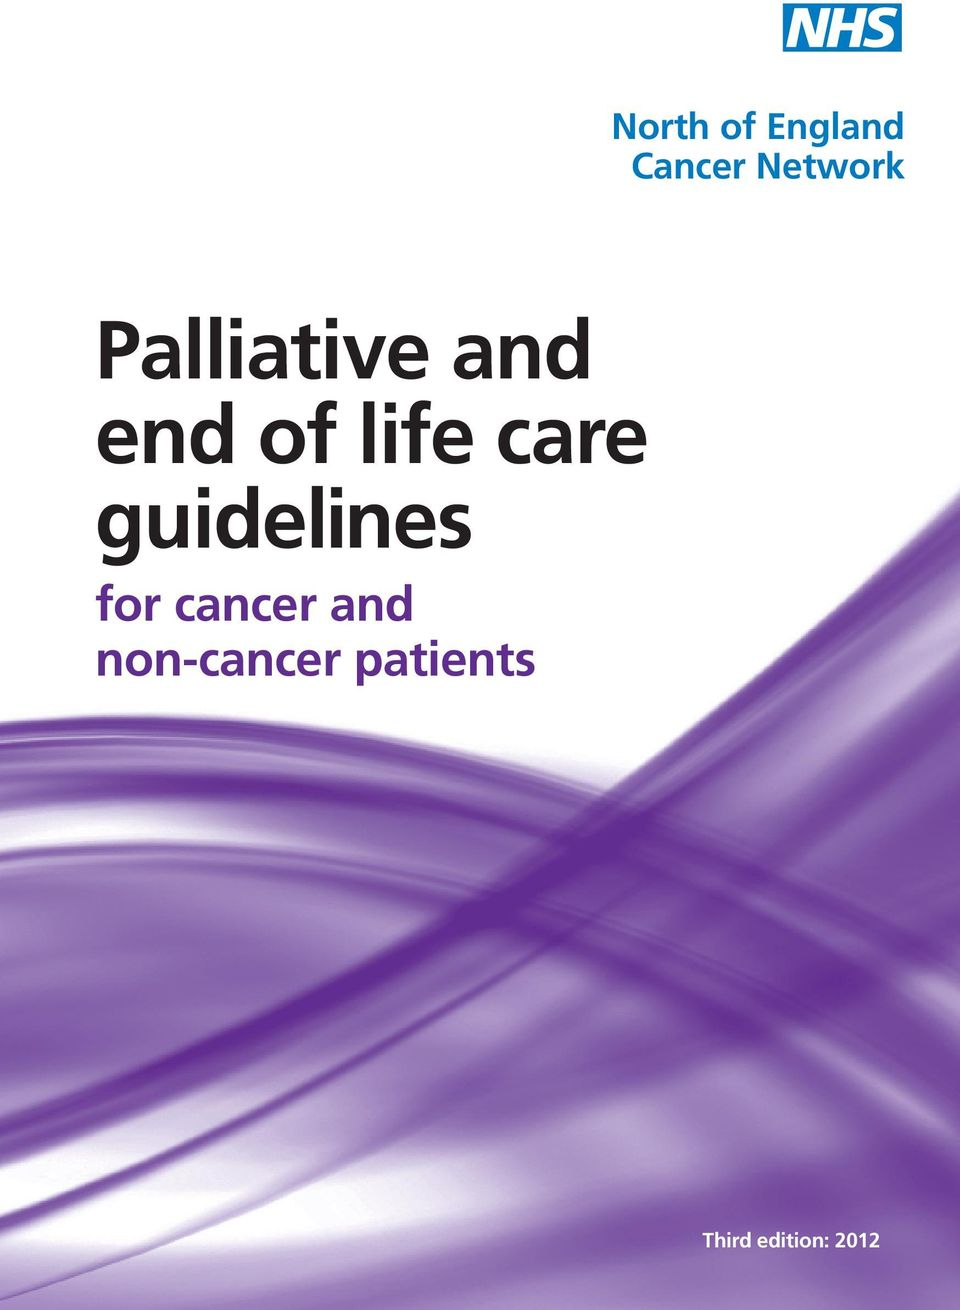 guidelines for cancer and